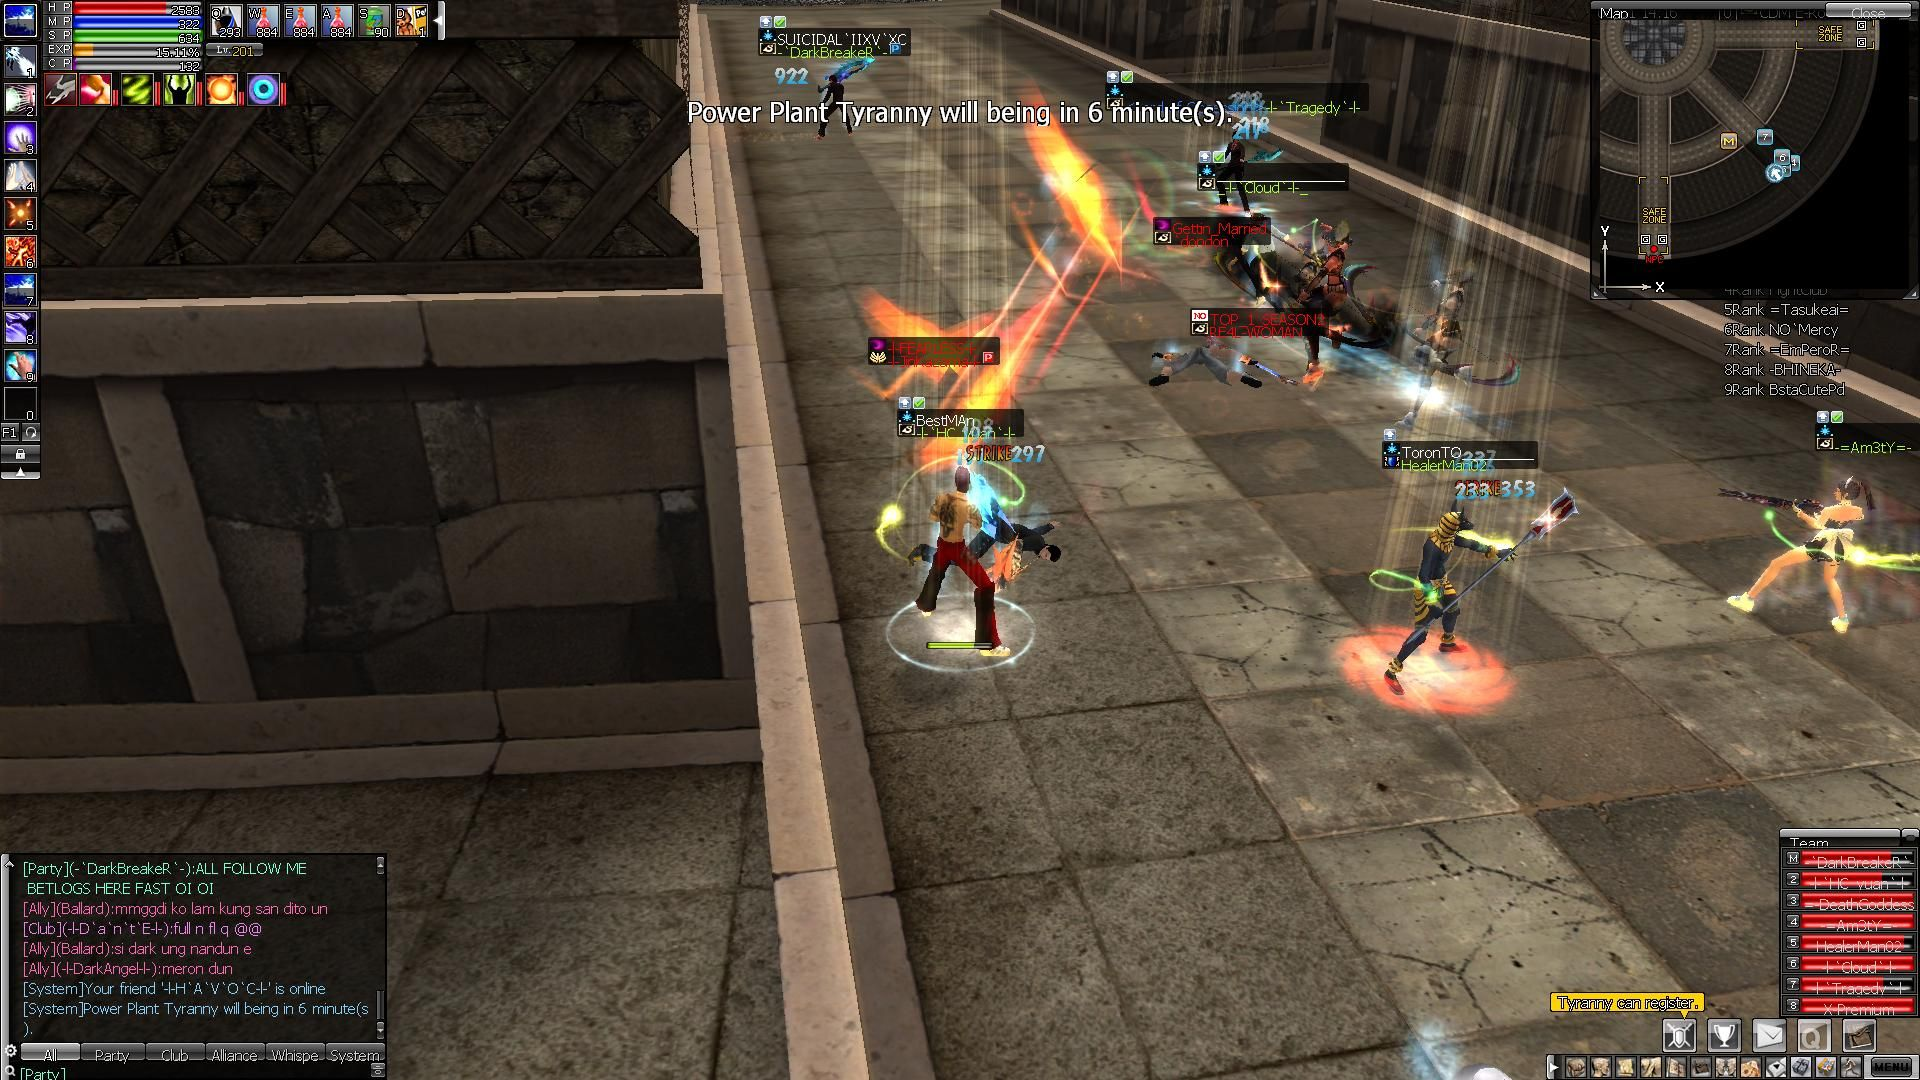 mmorpg-mmo-games-ran-online-group-combat-screenshot.jpg